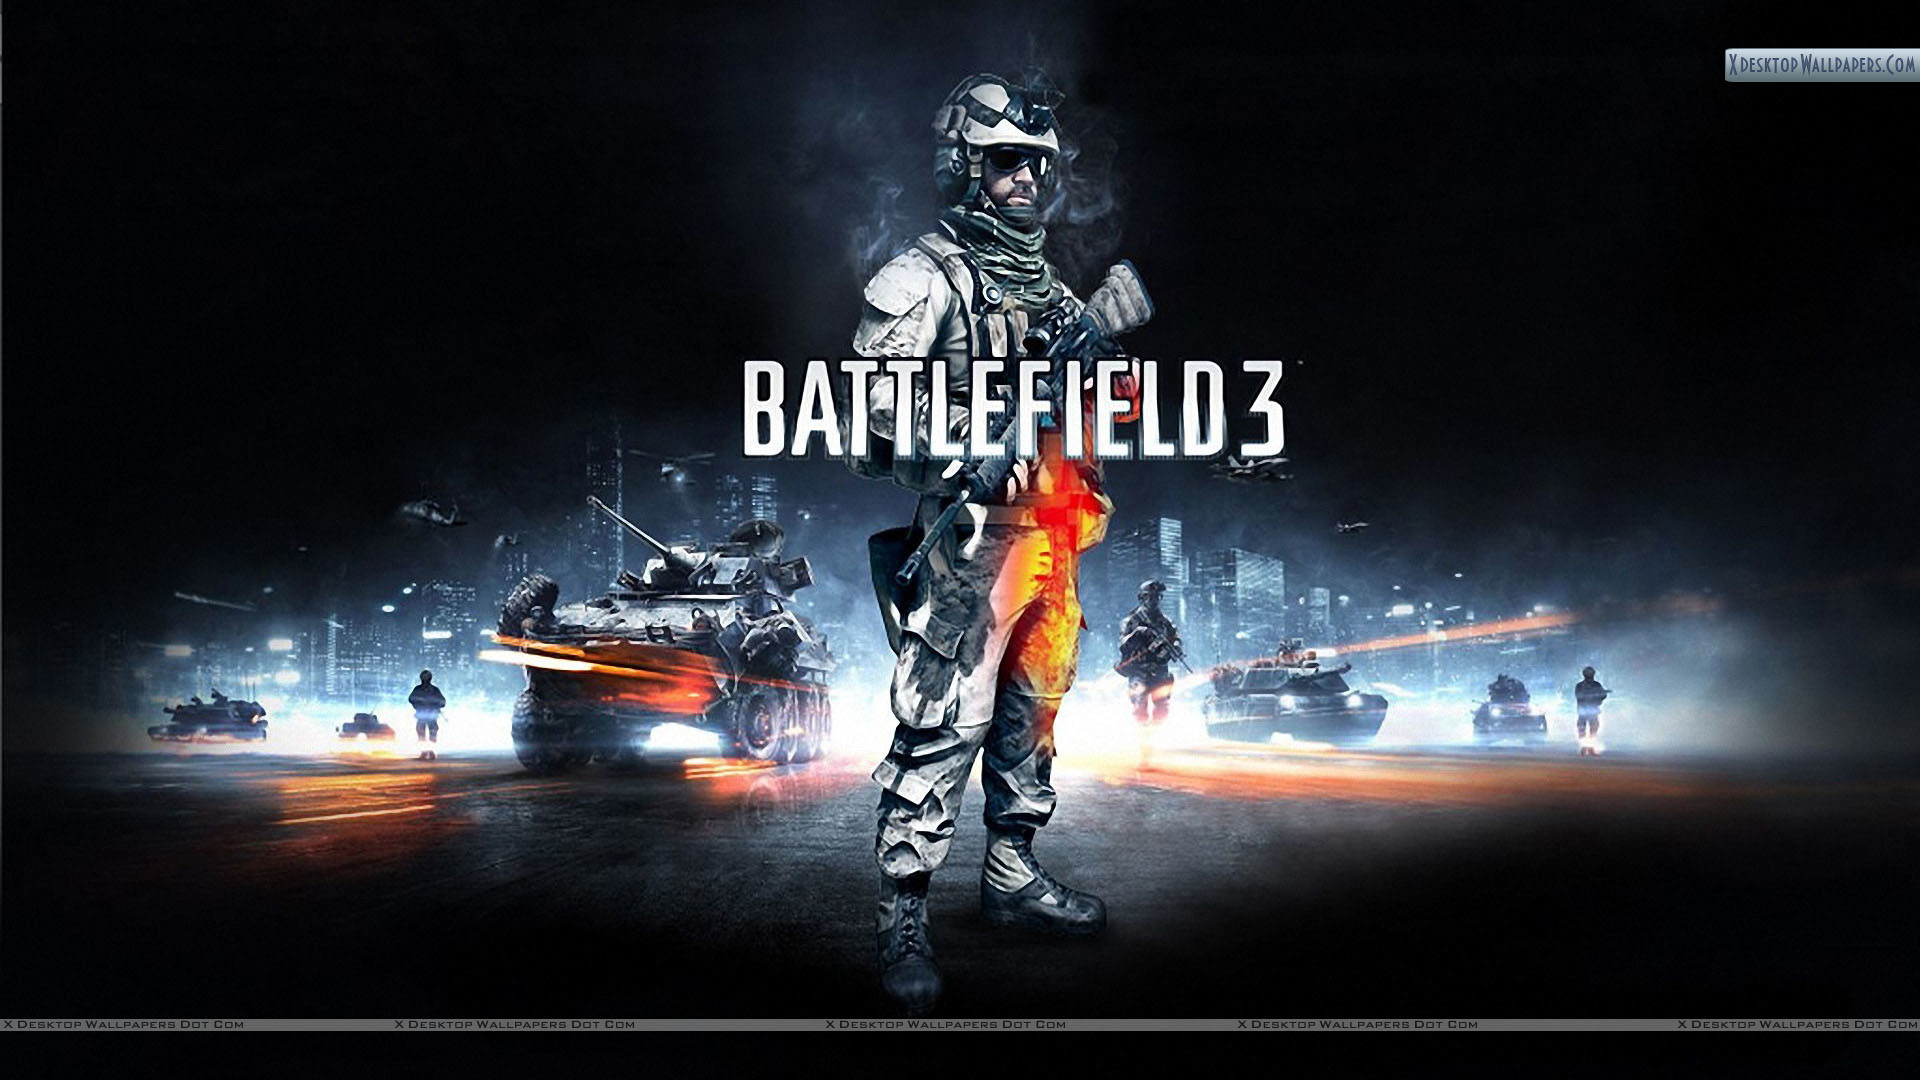 1920x1080 Categories: Games. Tags: Battlefield 3